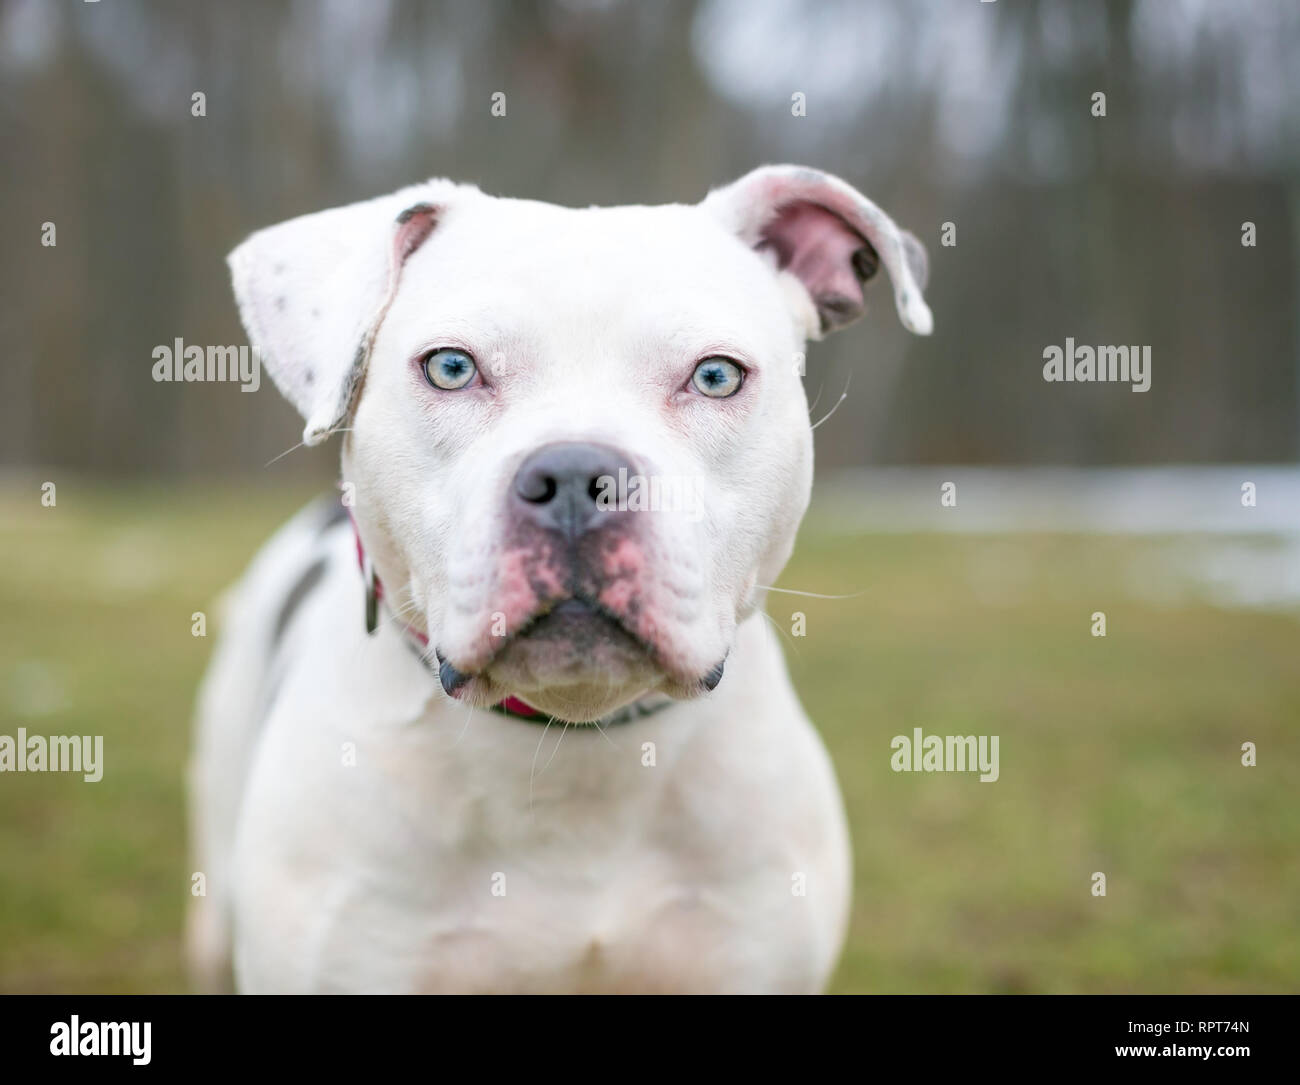 A white Pit Bull mixed breed dog outdoors - Stock Image